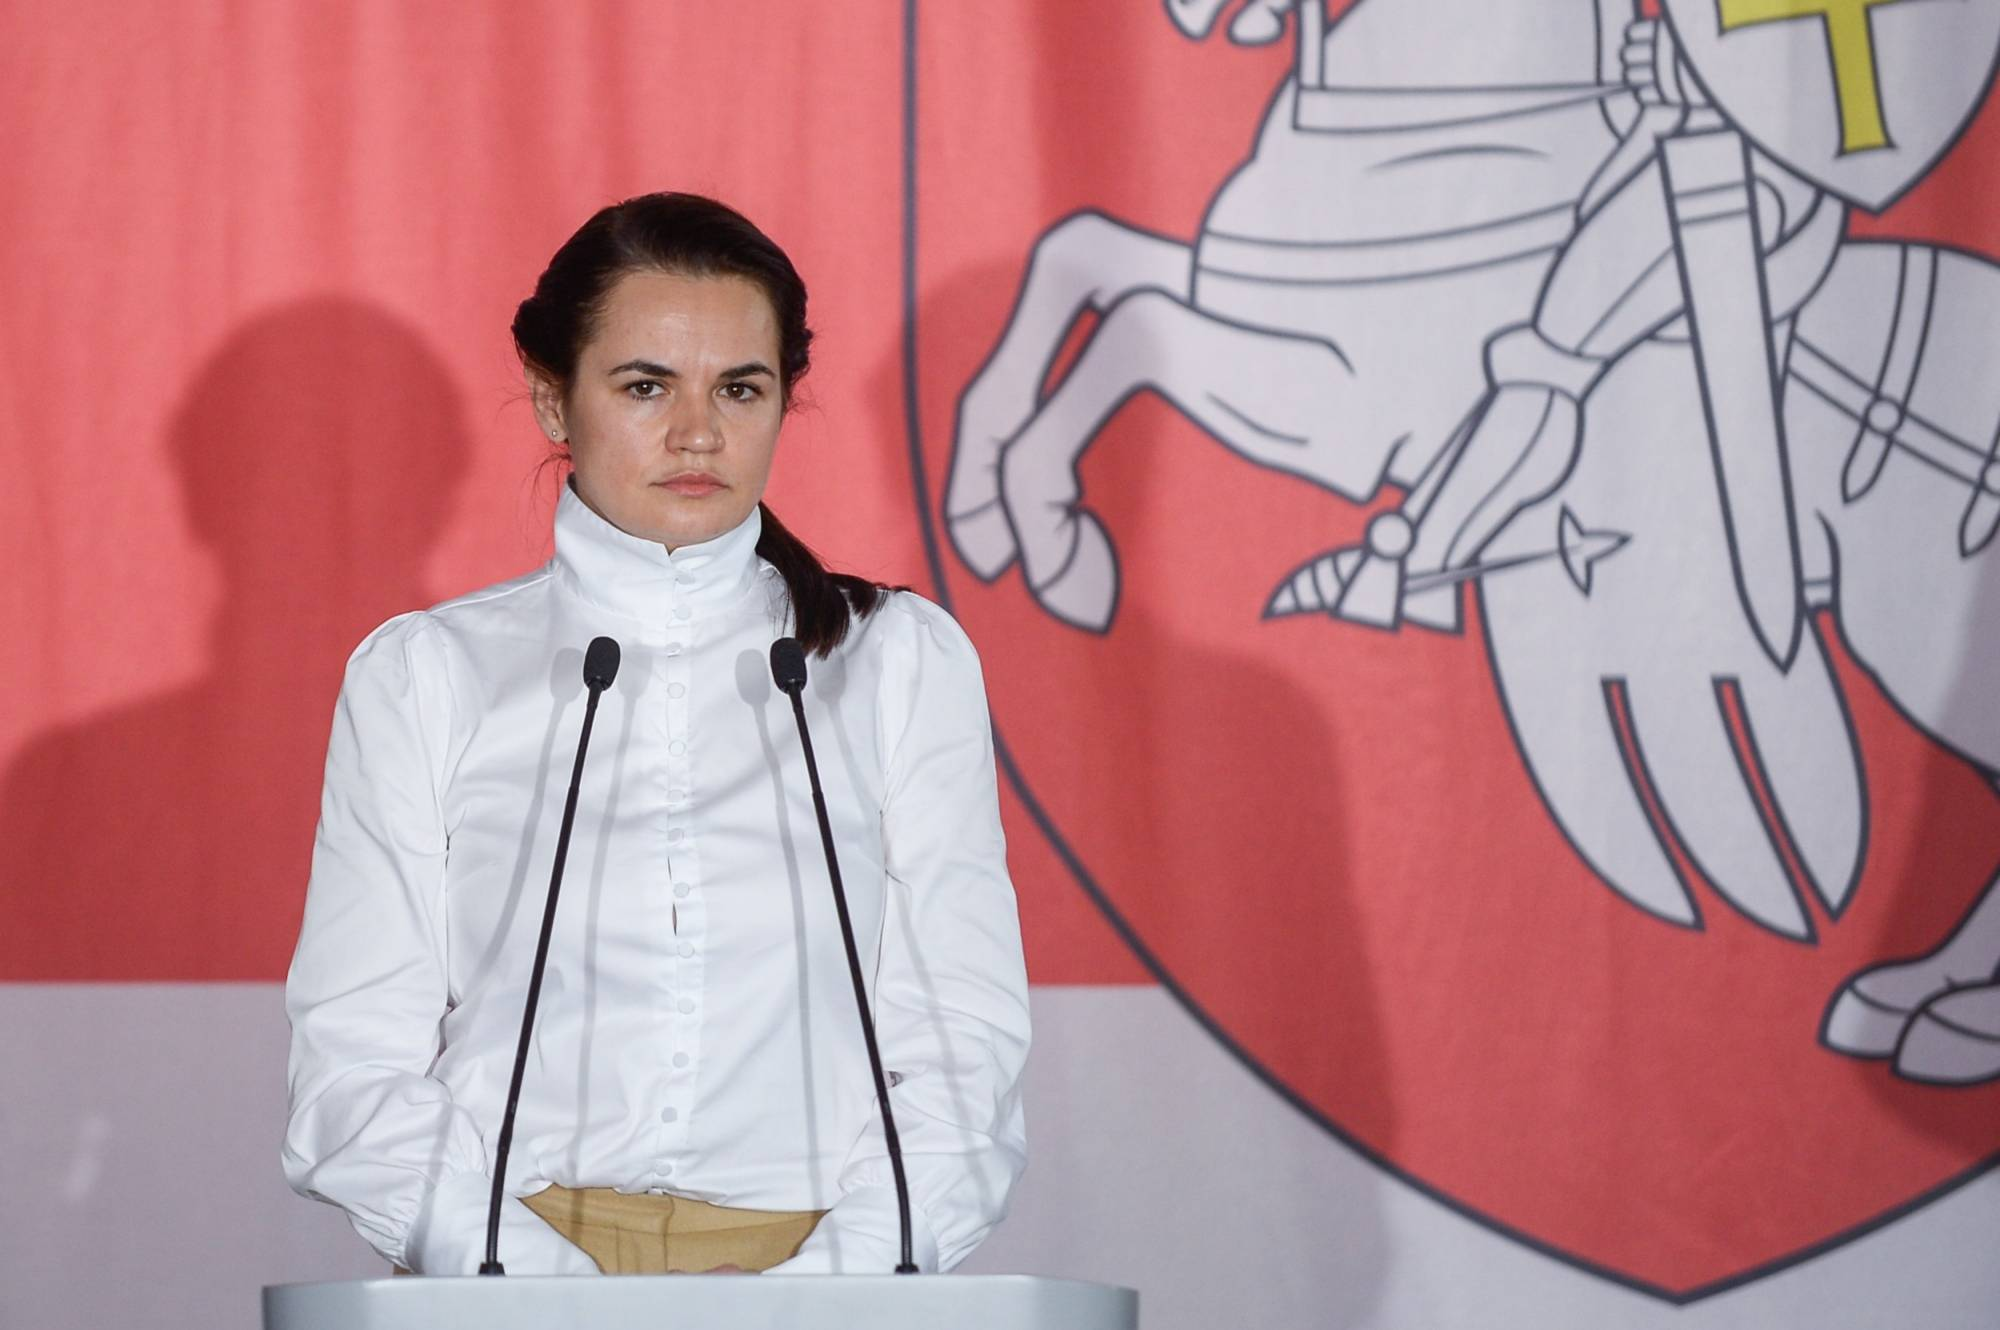 Exiled Belarus opposition leader Sviatlana Tsikhanouskaya attends a meeting at the Belarus house in Warsaw, Poland, in September 2020.  | GETTY IMAGES / VIA BLOOMBERG